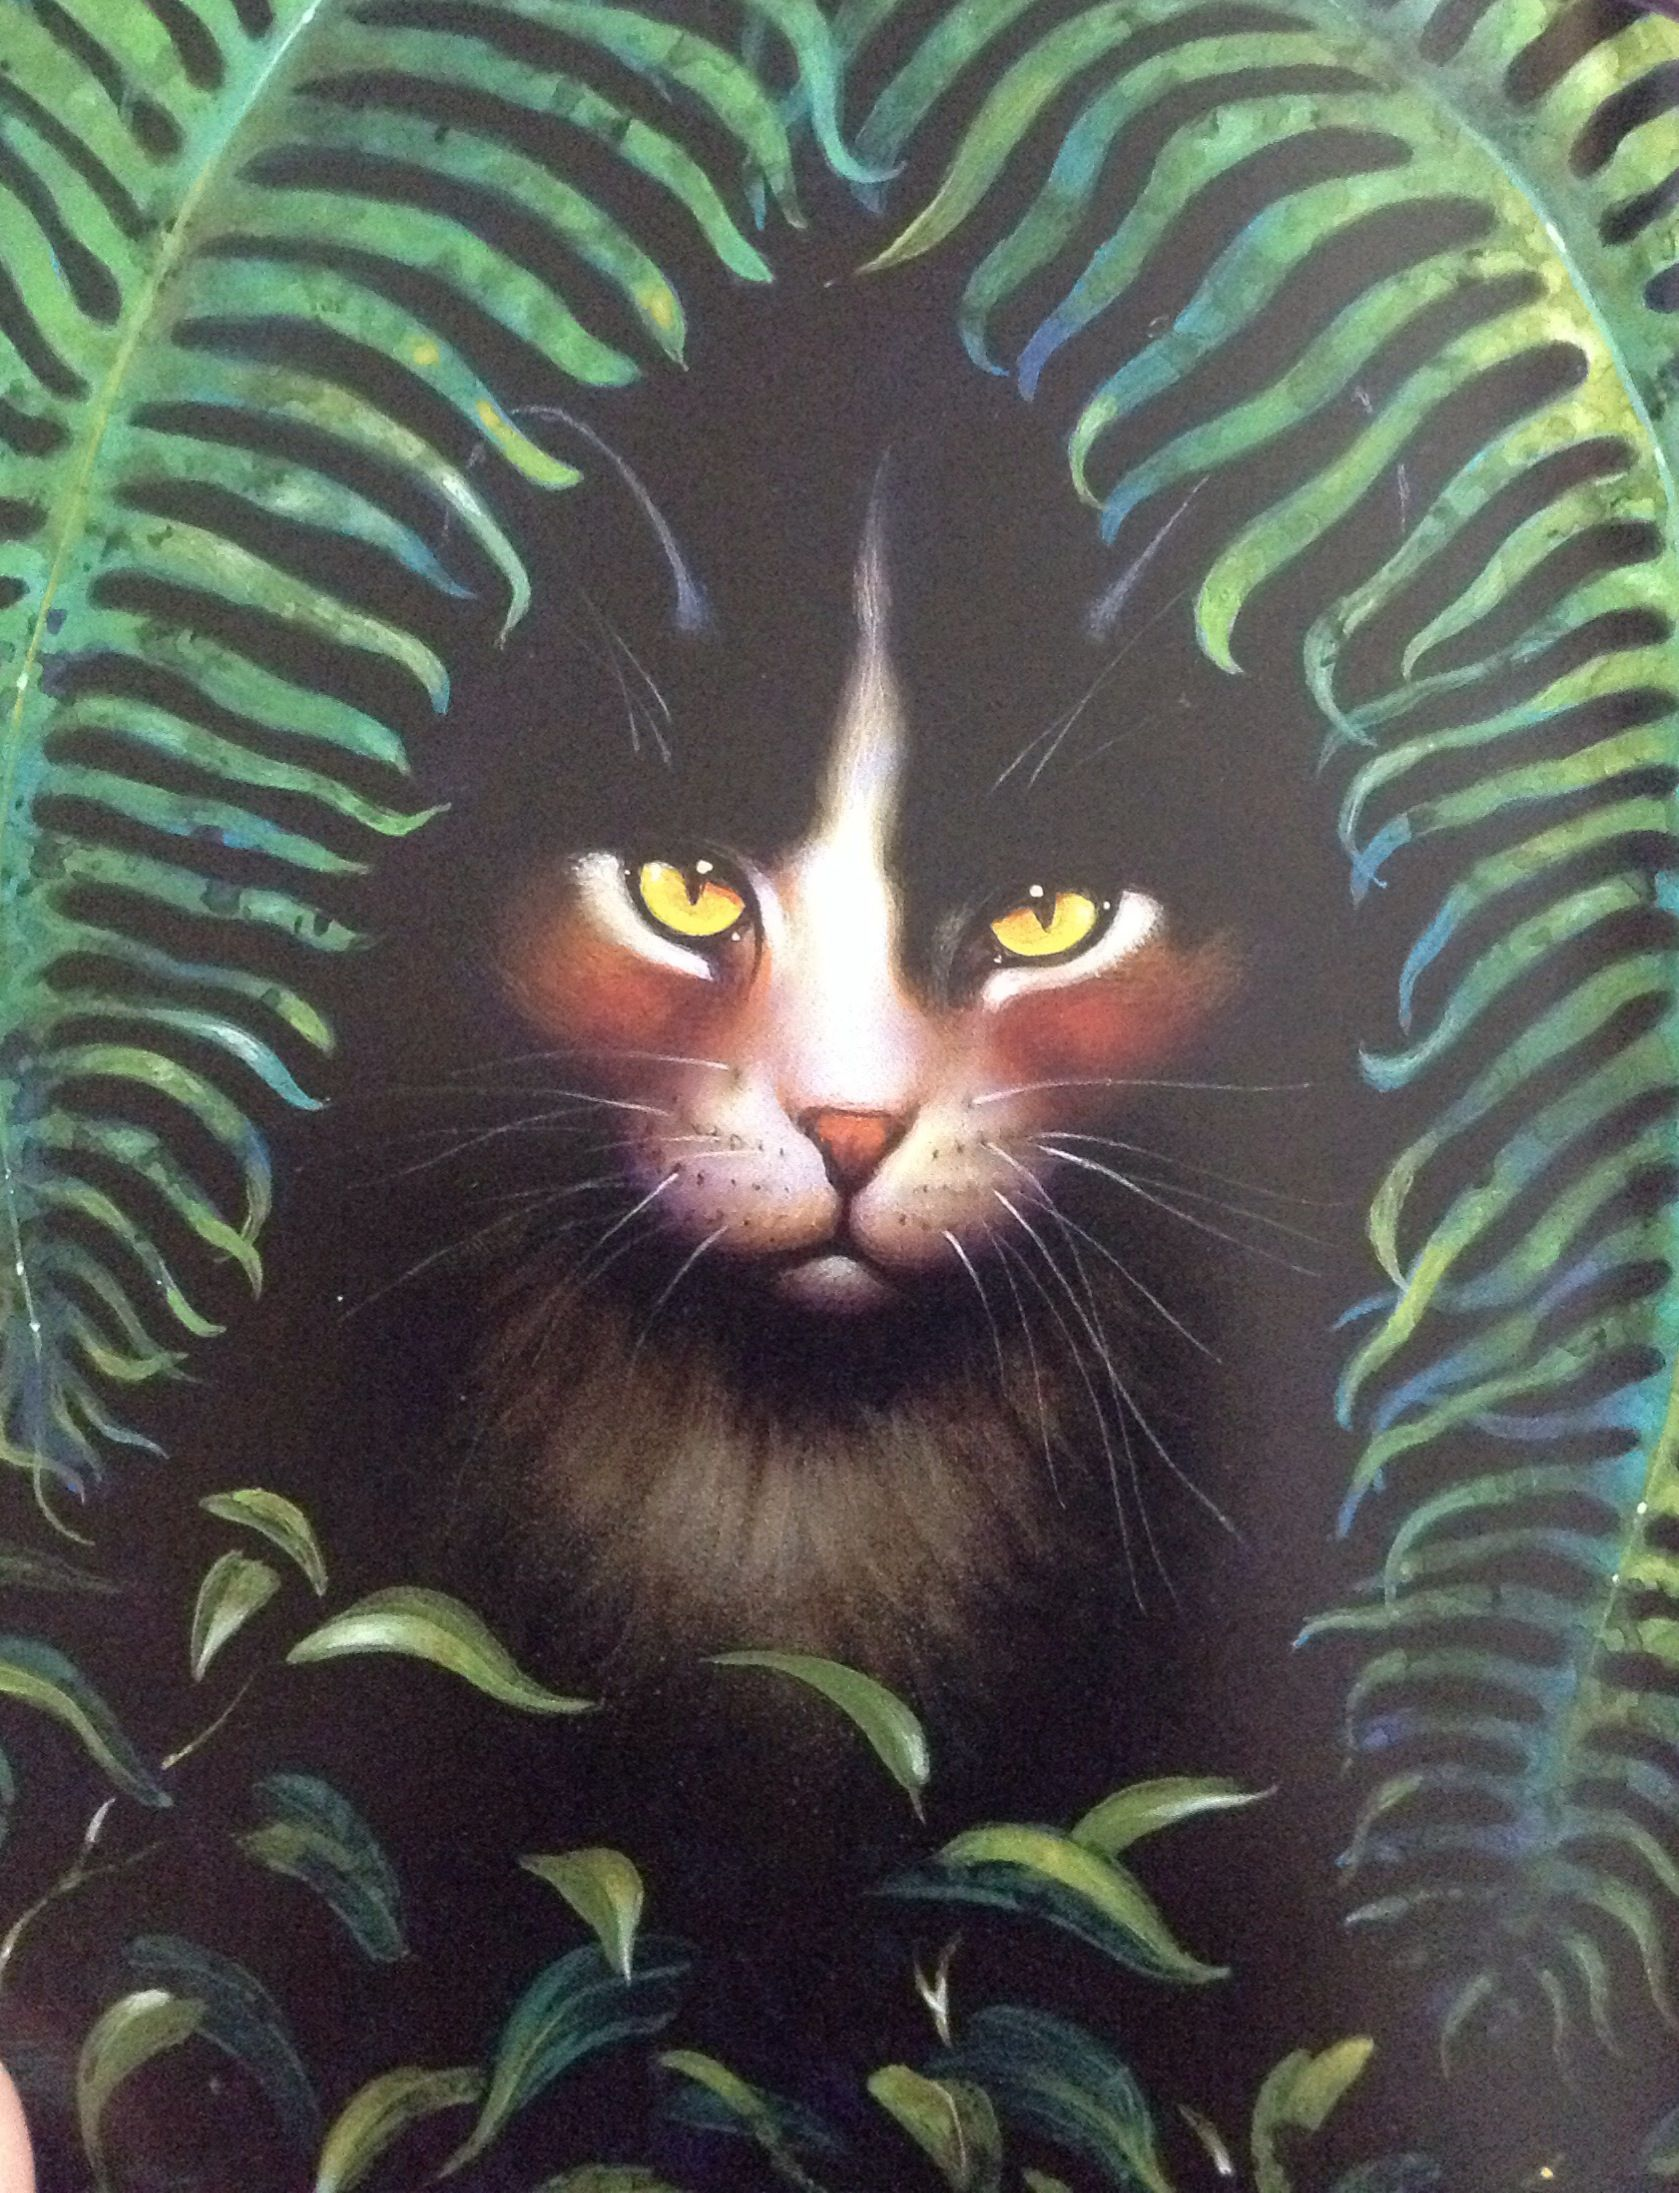 Spottedleaf My Third Favorite Character Warrior Cats Warrior